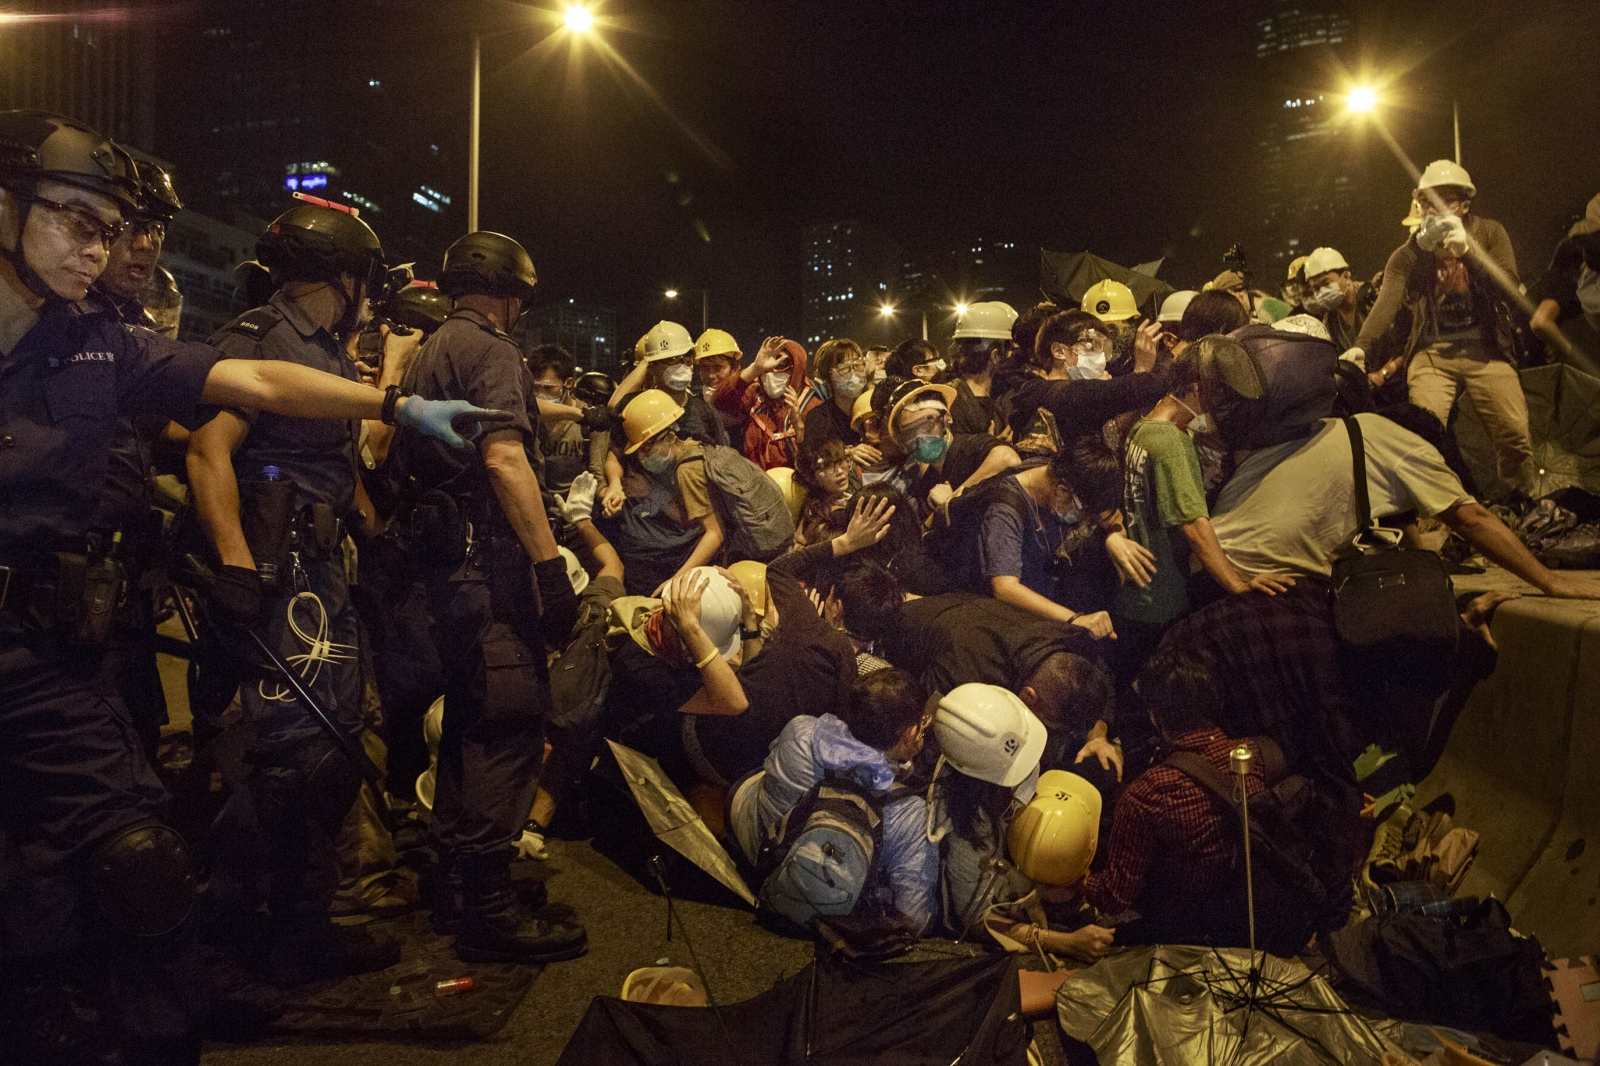 Protestors attempt to cross a barricade during a violent night of scuffles with the police in the Admiralty district of Hong Kong, in the early hours of December 1, 2014. Protestors attempted to retake and occupy a major road that had earlier been cleared by the police weeks earlier. Pro-democracy demonstrators blocked major thoroughfares and roads of the city for just over two months, calling for universal suffrage in 2017 with the right to elect the city's own chief executive-- without Beijing's pre-approval of candidates-- a demand that remains rejected by Beijing.